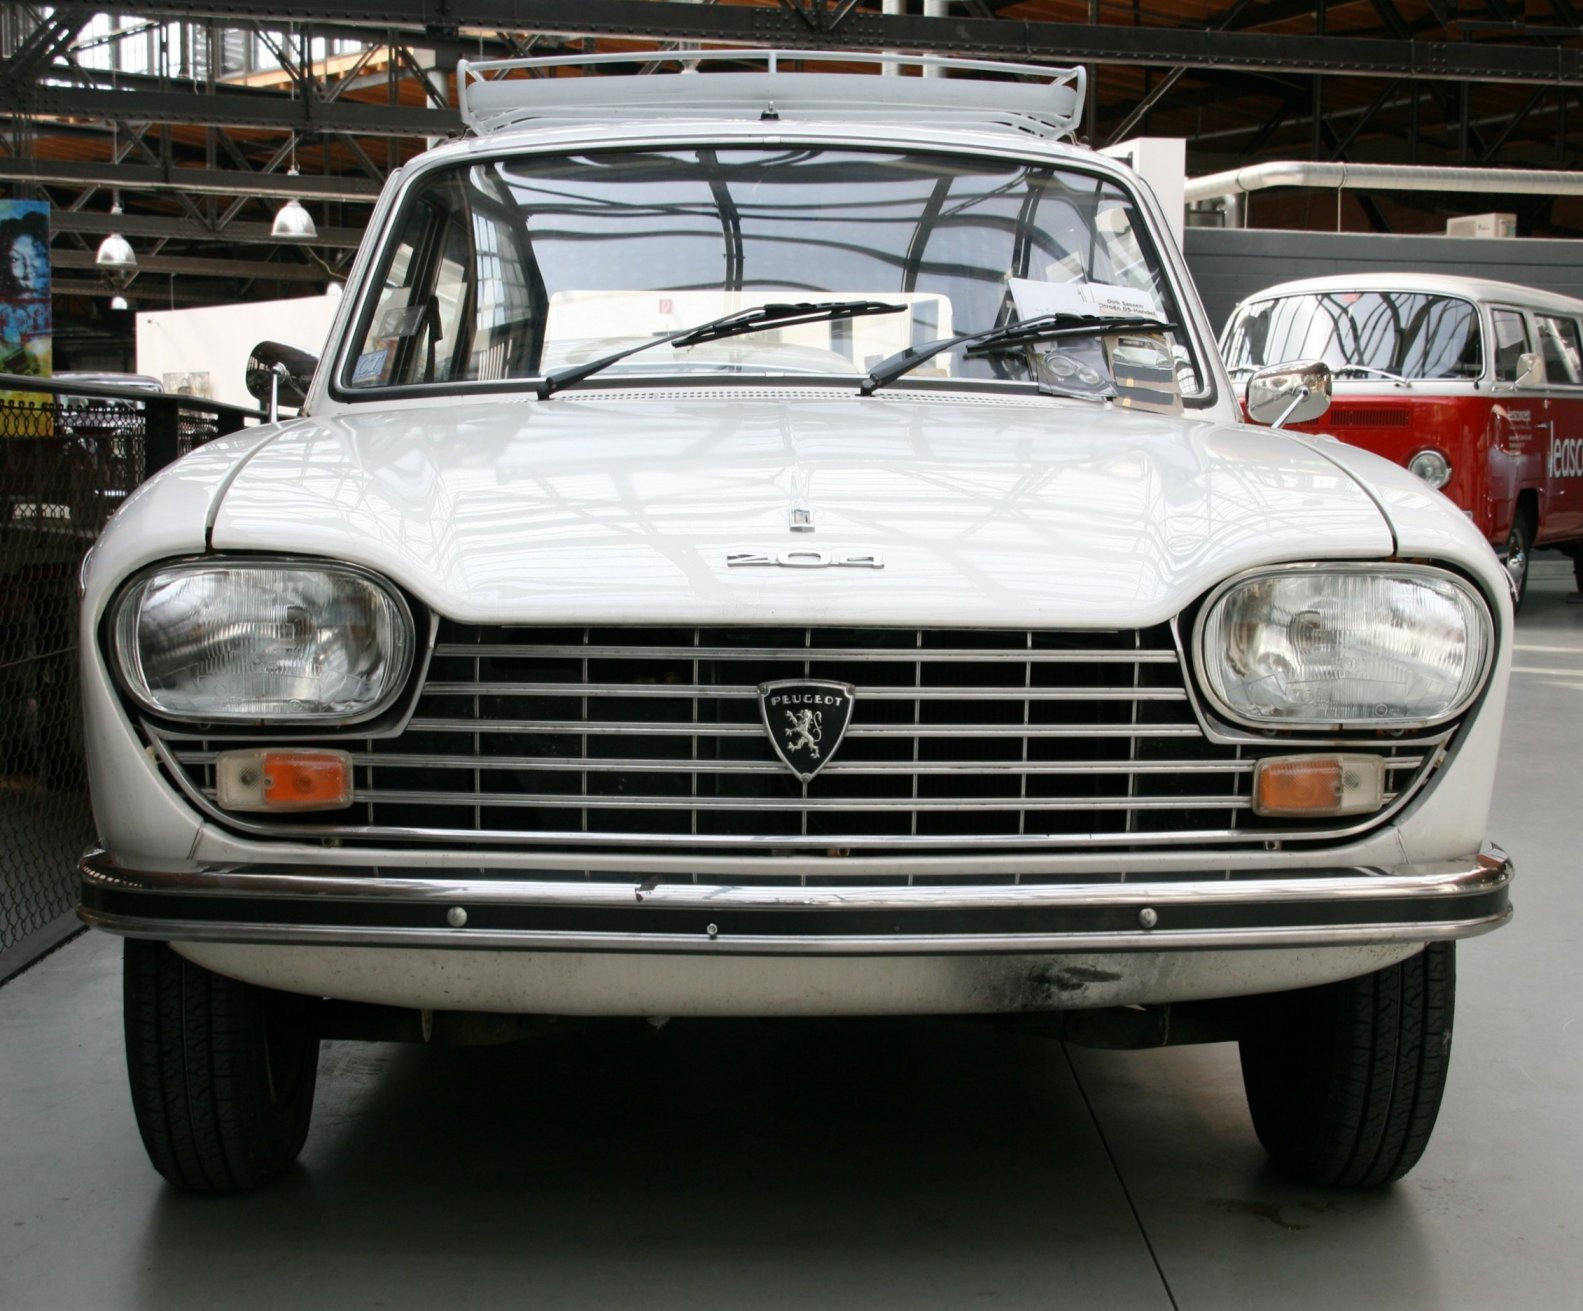 PEUGEOT 204 silver